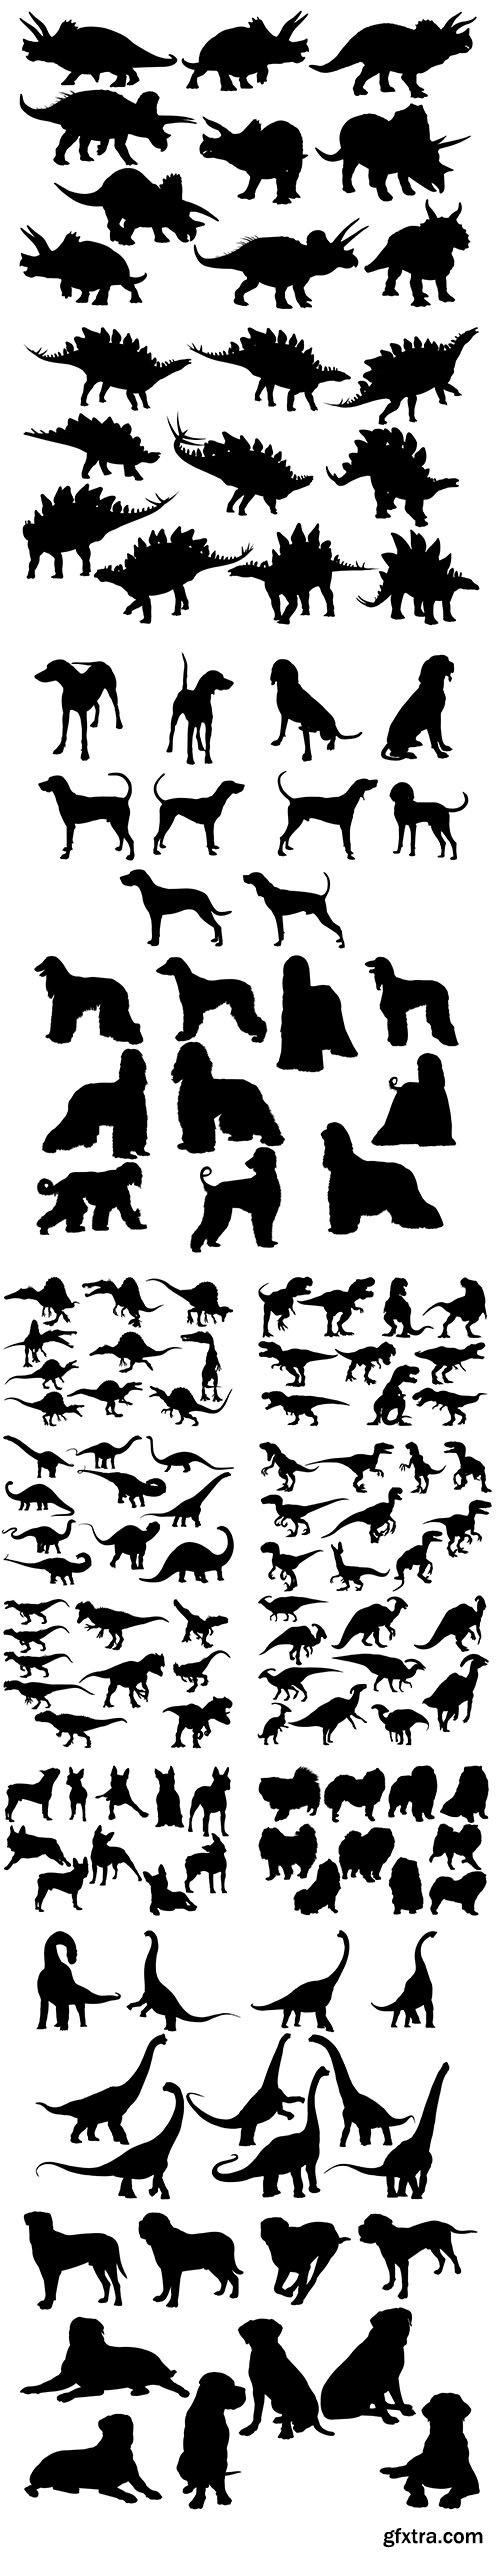 Dinosaur and Dog Silhouette Collection